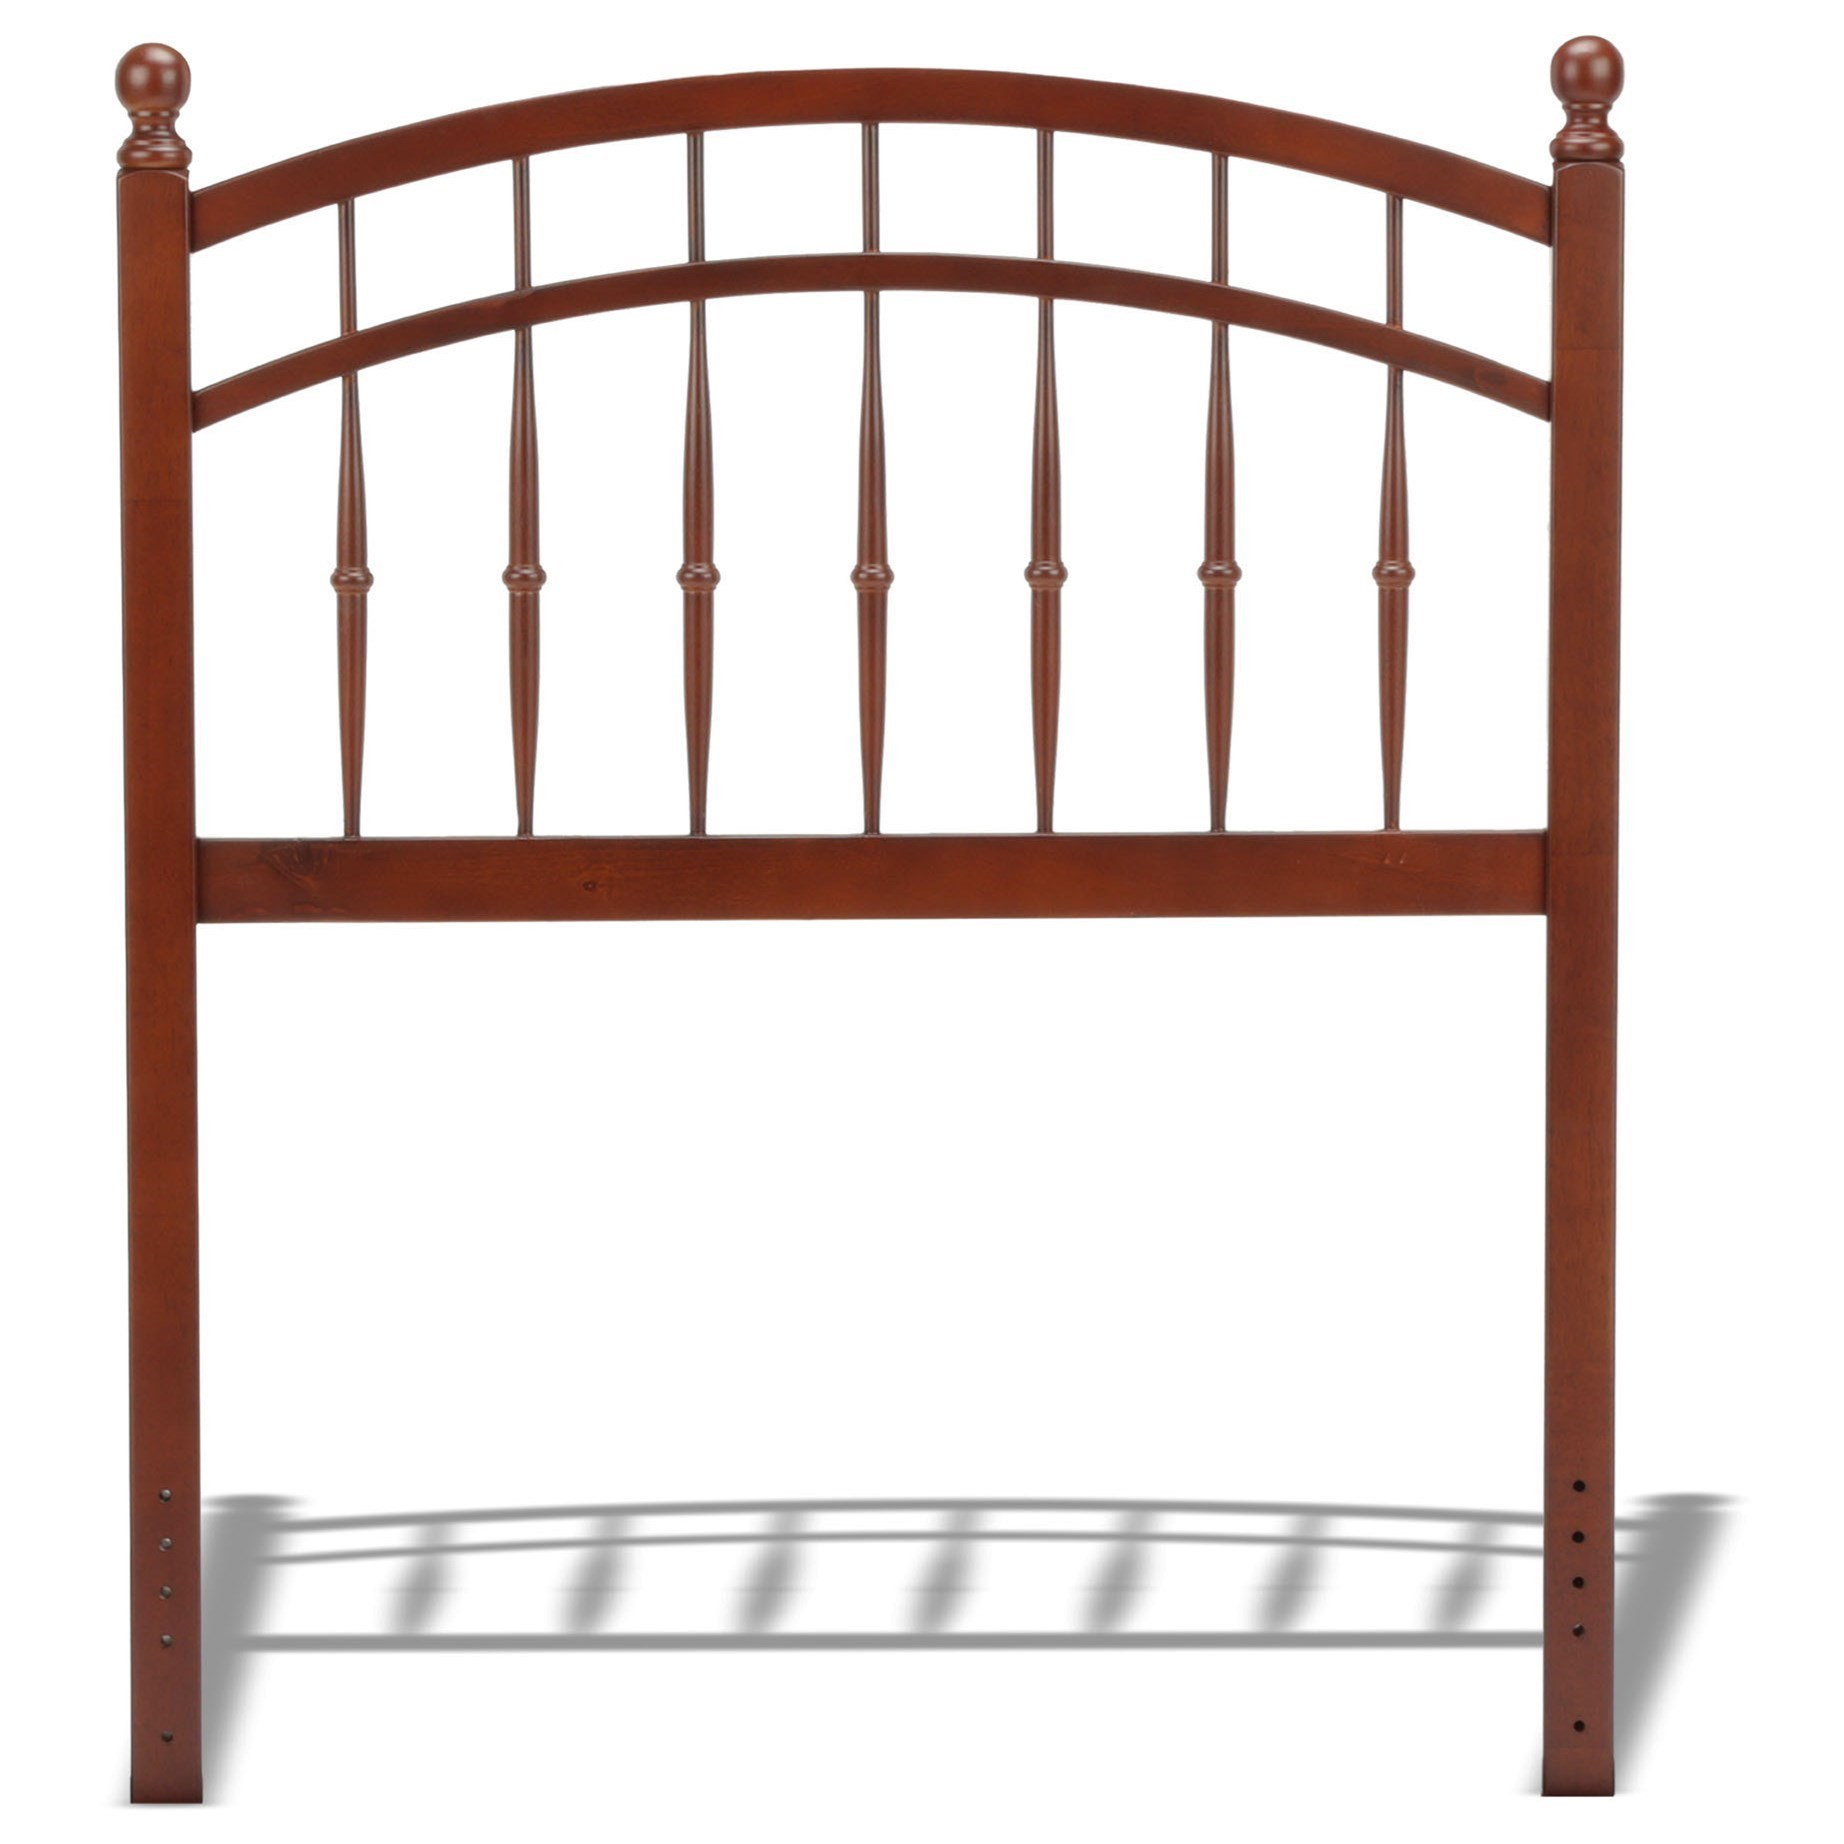 Fashion Bed Group Wood Beds Twin Wood Headboard - Item Number: 51T063